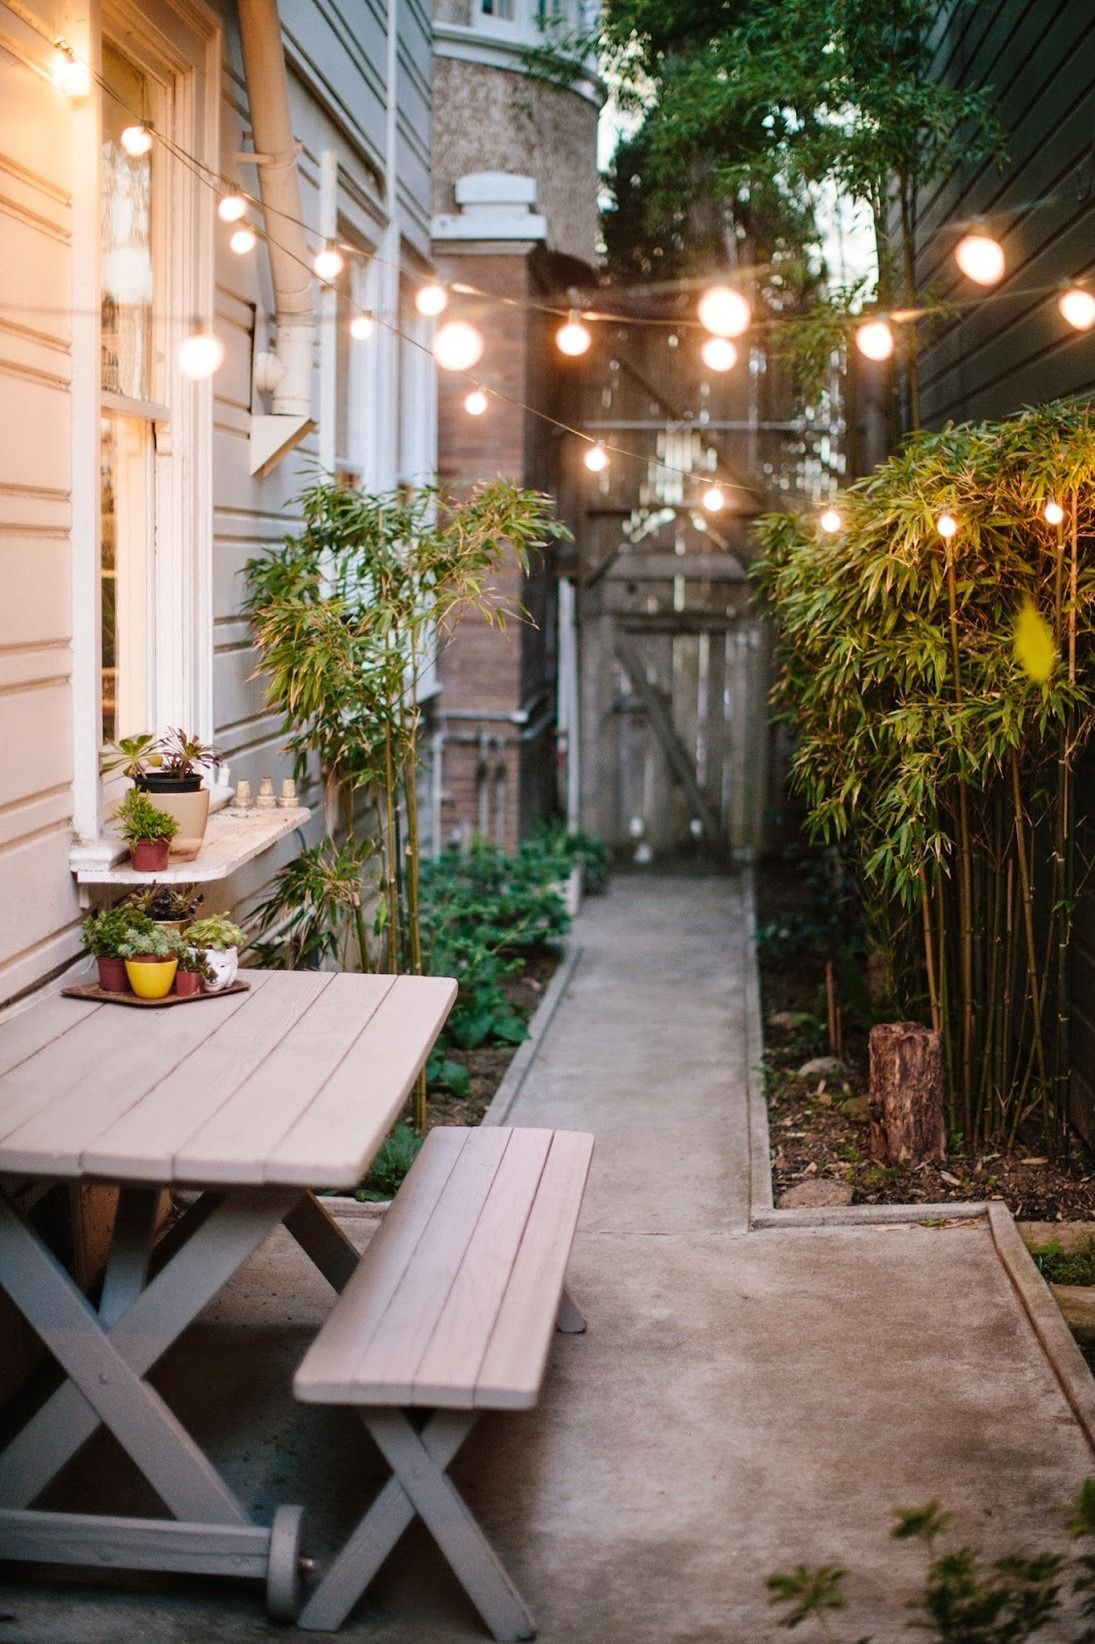 This Summer, No Excuses: Make the Most of Your Small Outdoor Space